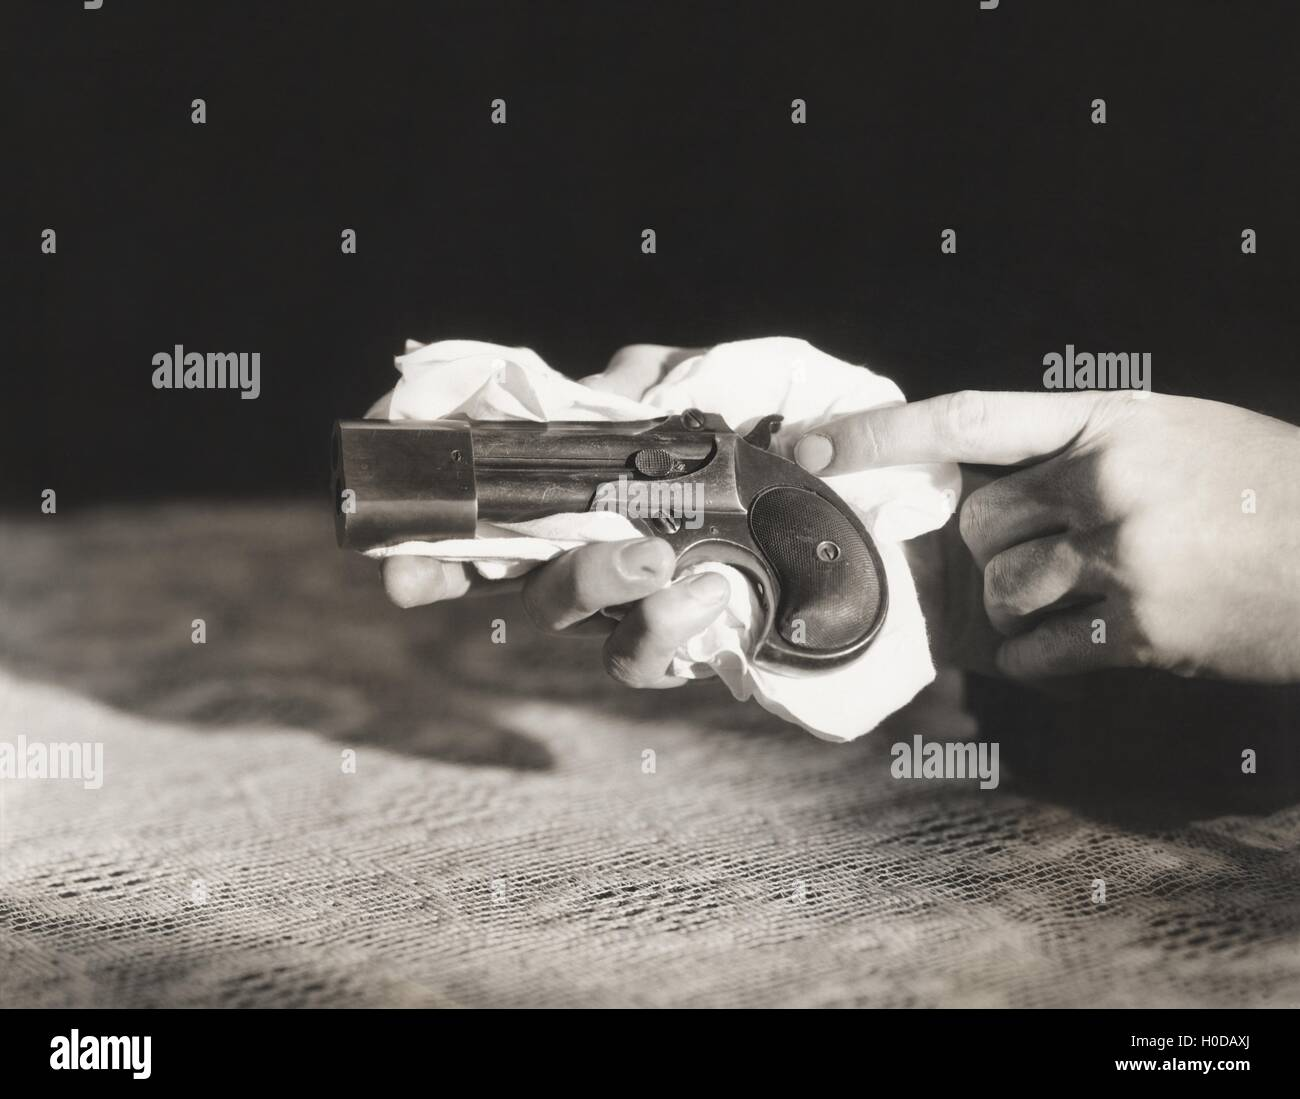 Murder weapon - Stock Image